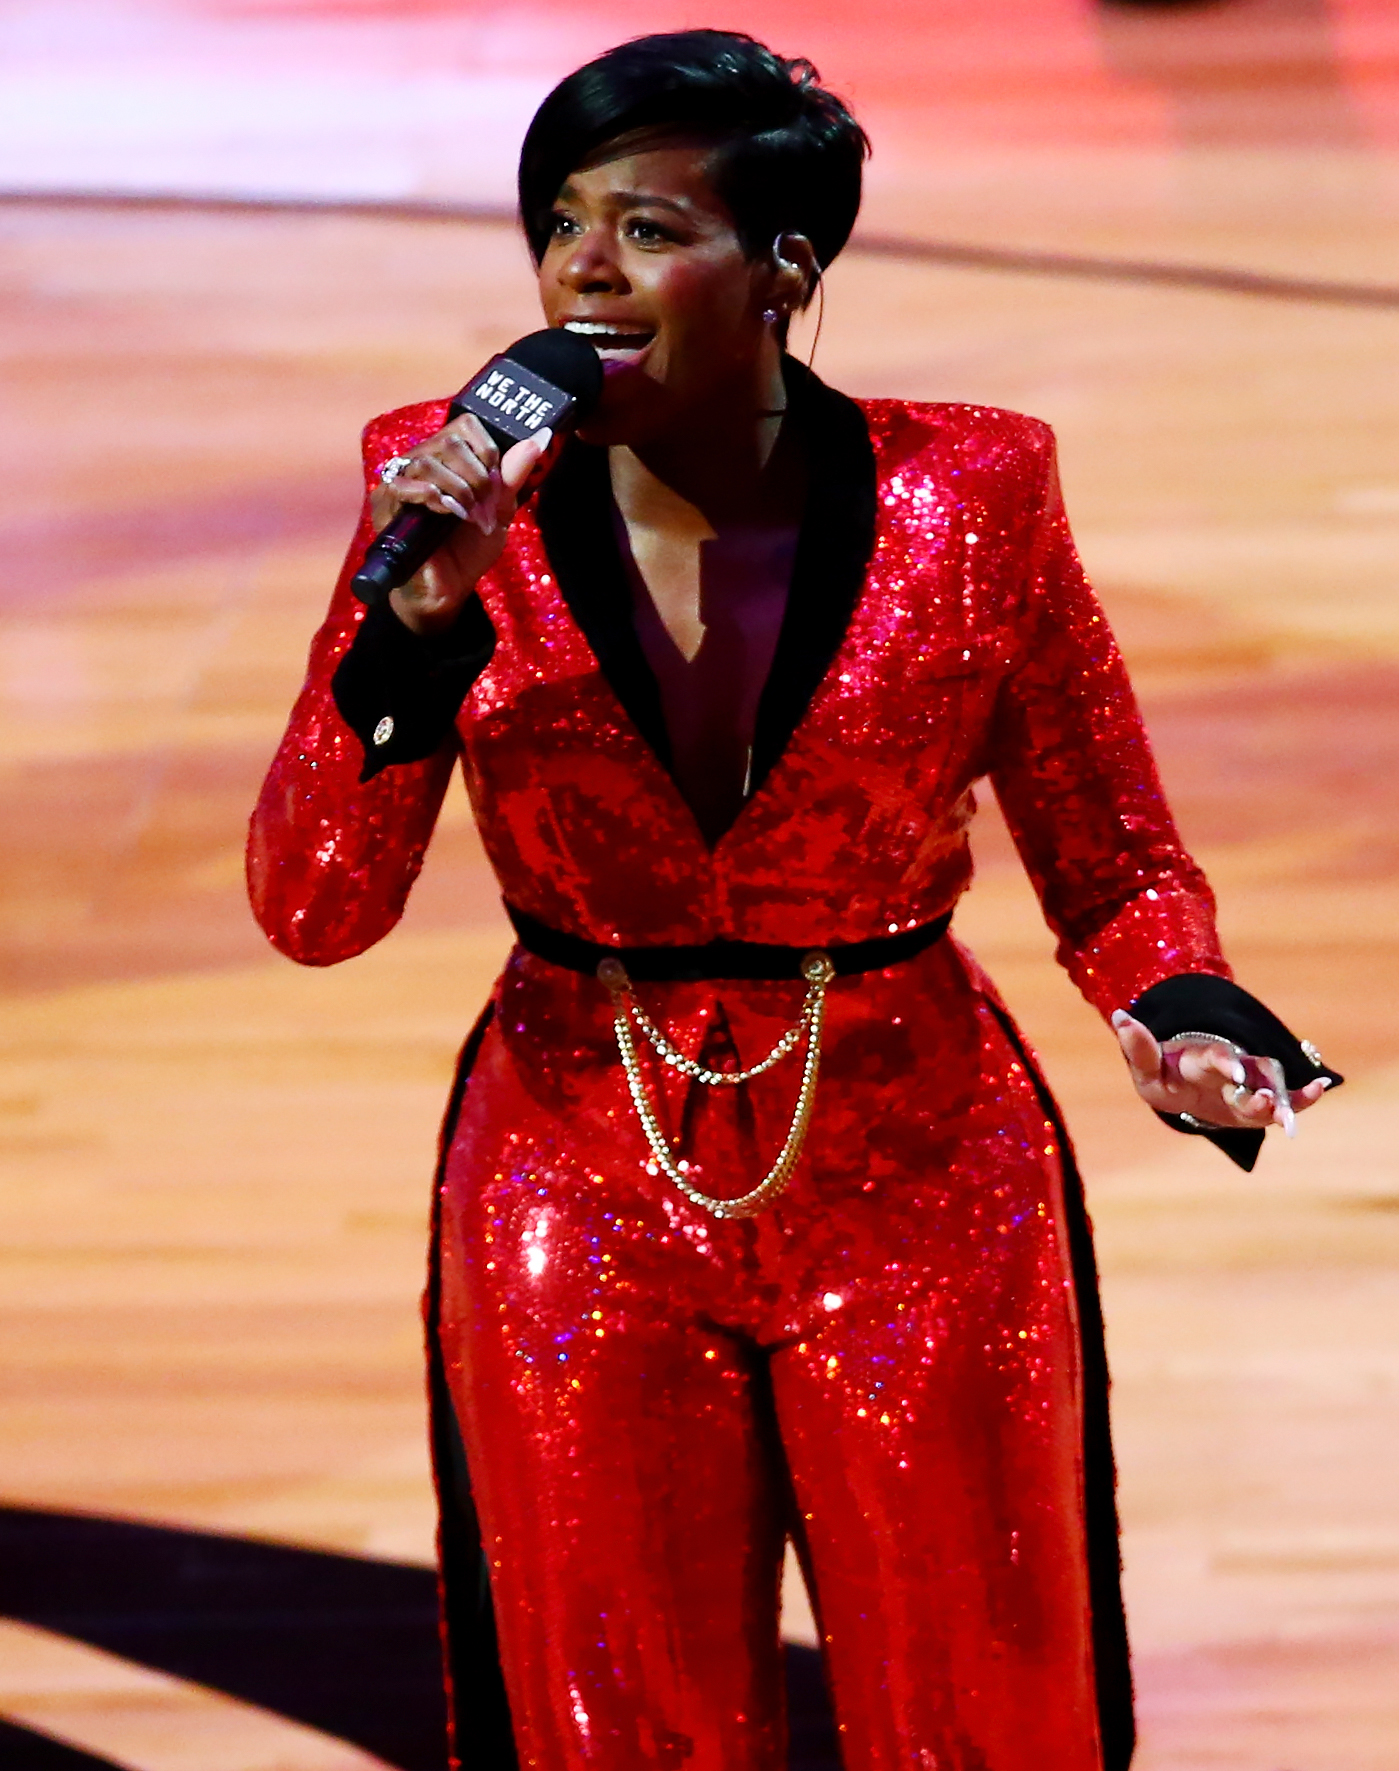 Fantasia is bringing her 'Sketchbook' to Sugar Land